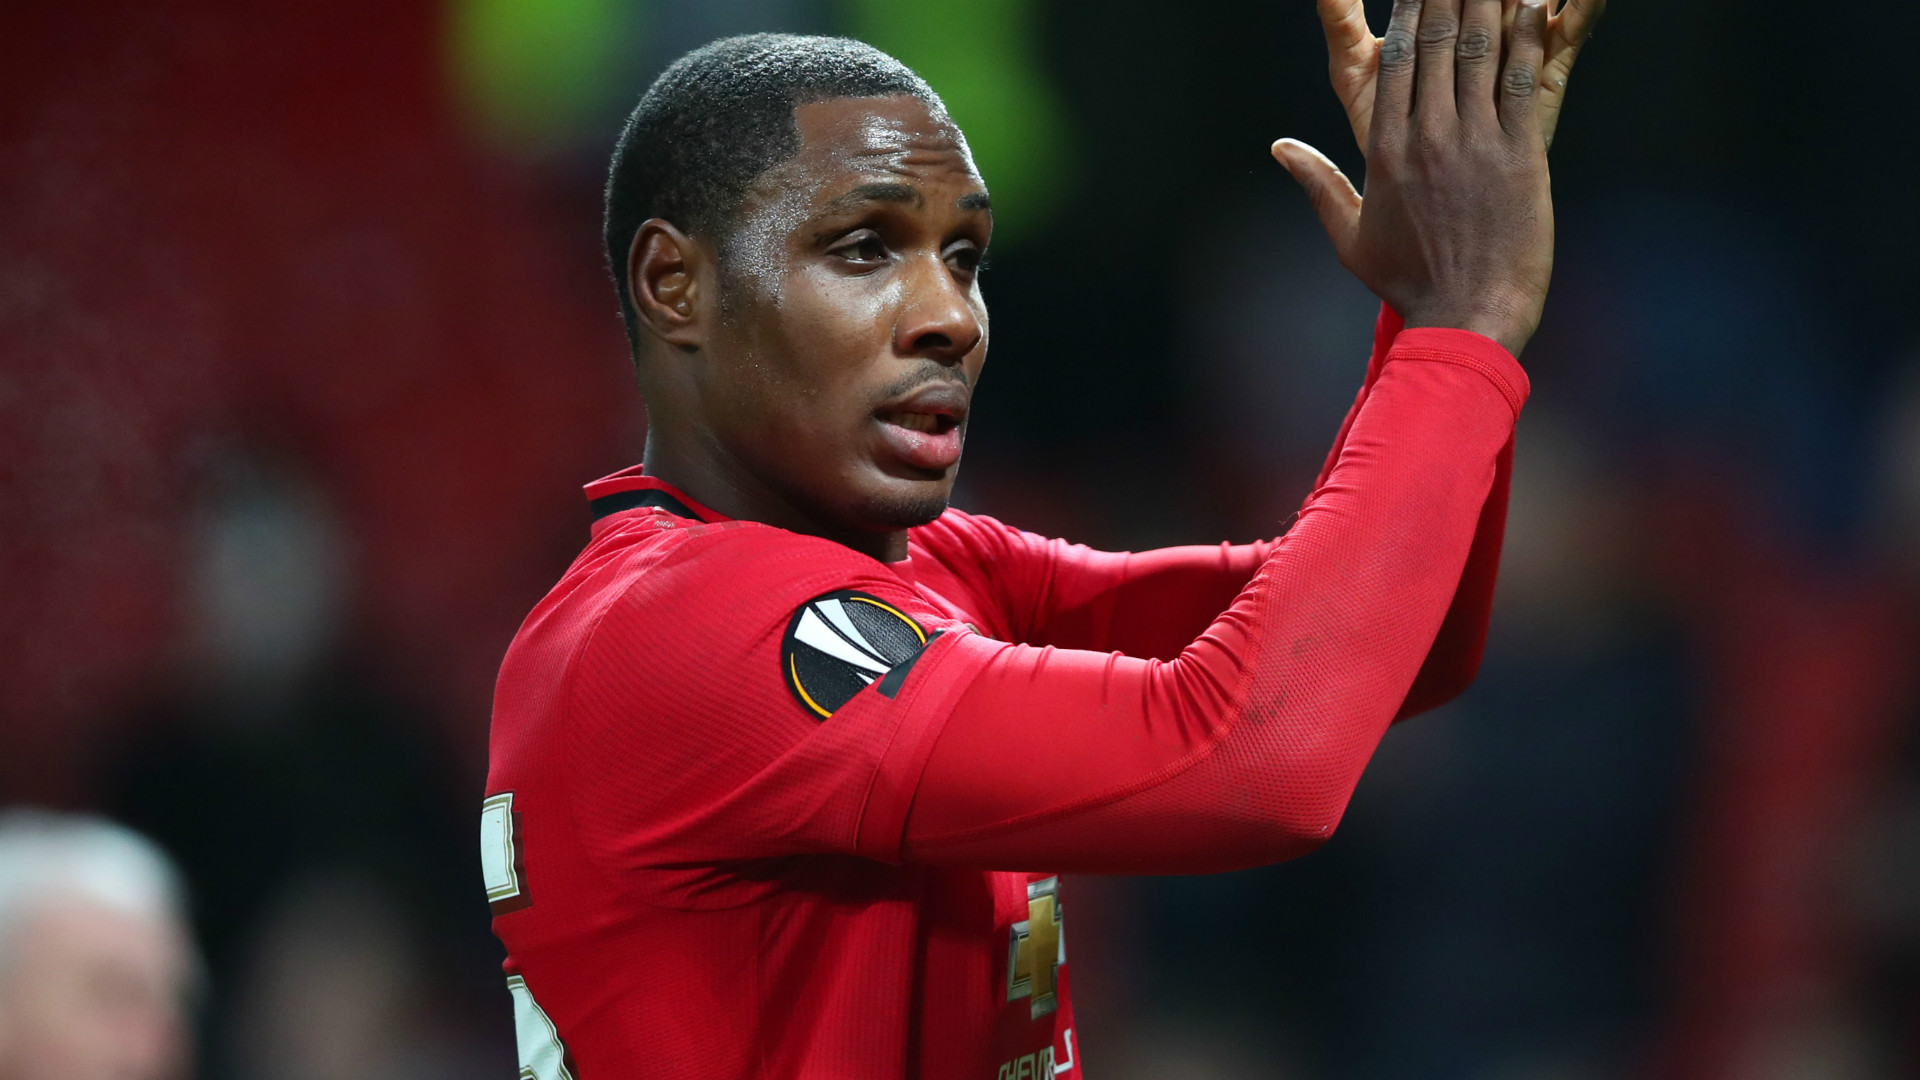 Coronavirus: How Manchester United star Ighalo is touching lives in Nigeria